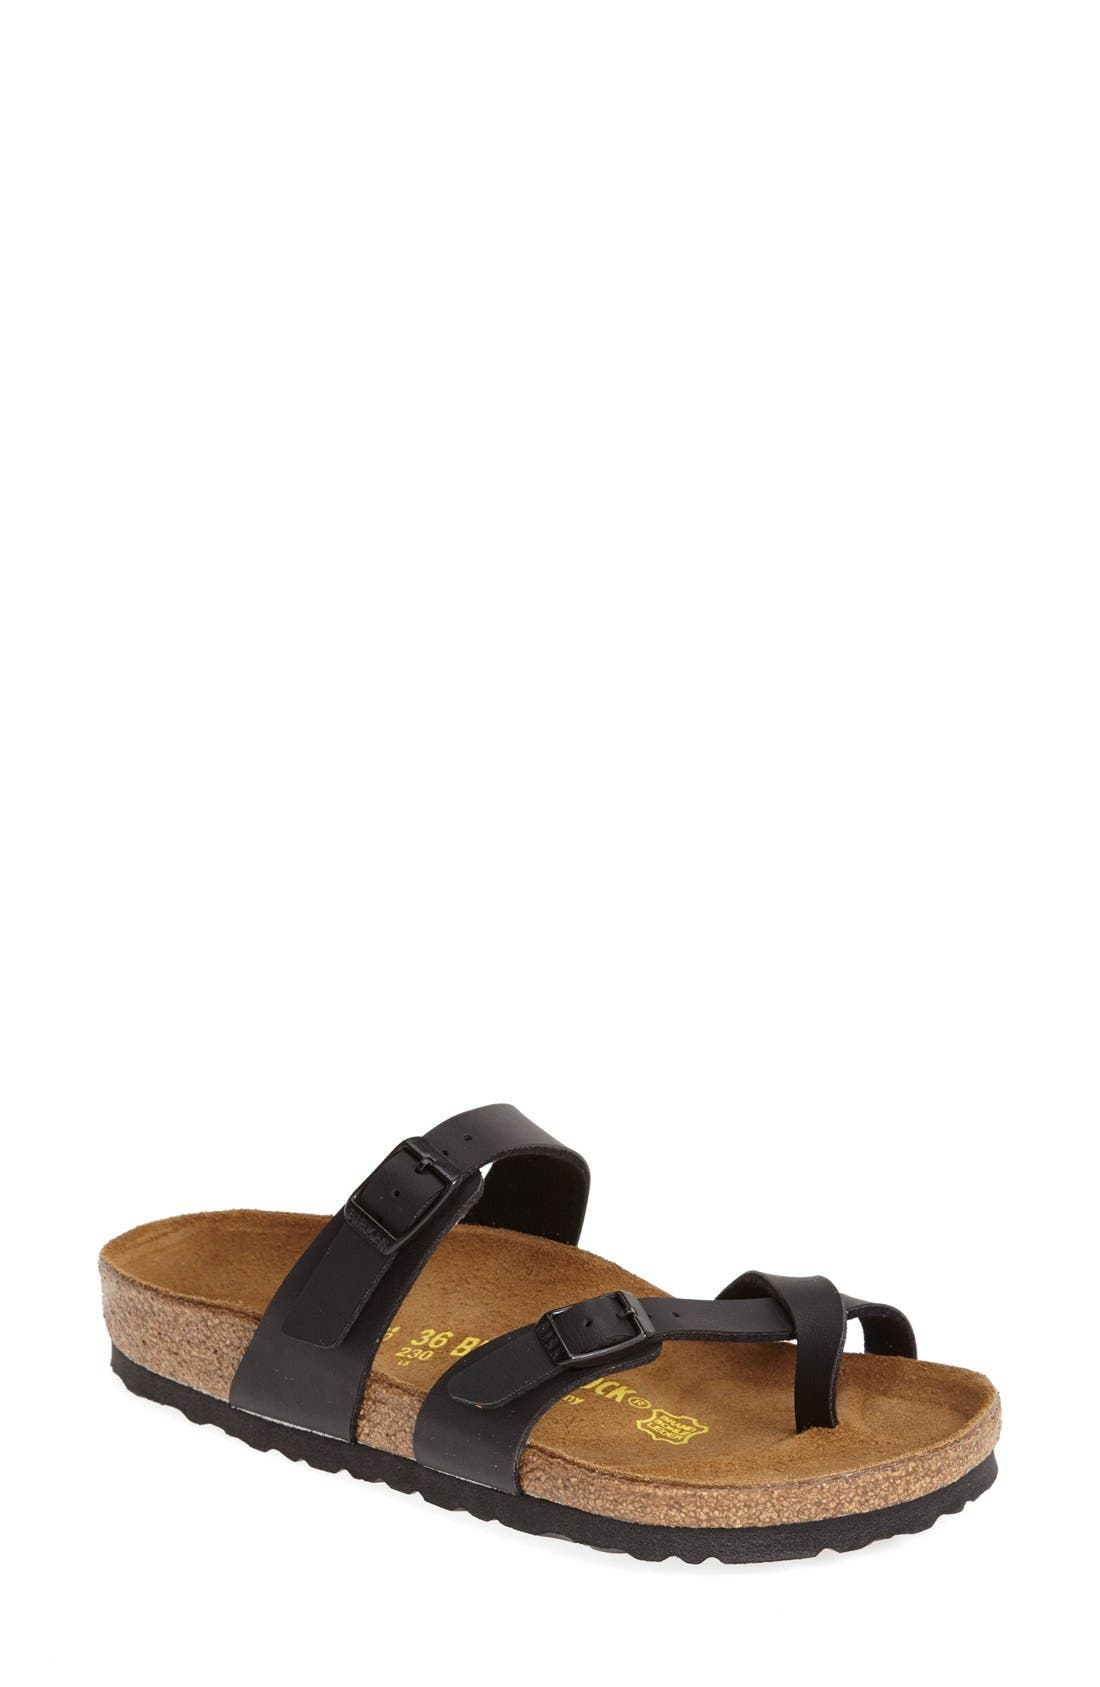 Mayari Birko-Flor Sandal,                         Main,                         color, BLACK